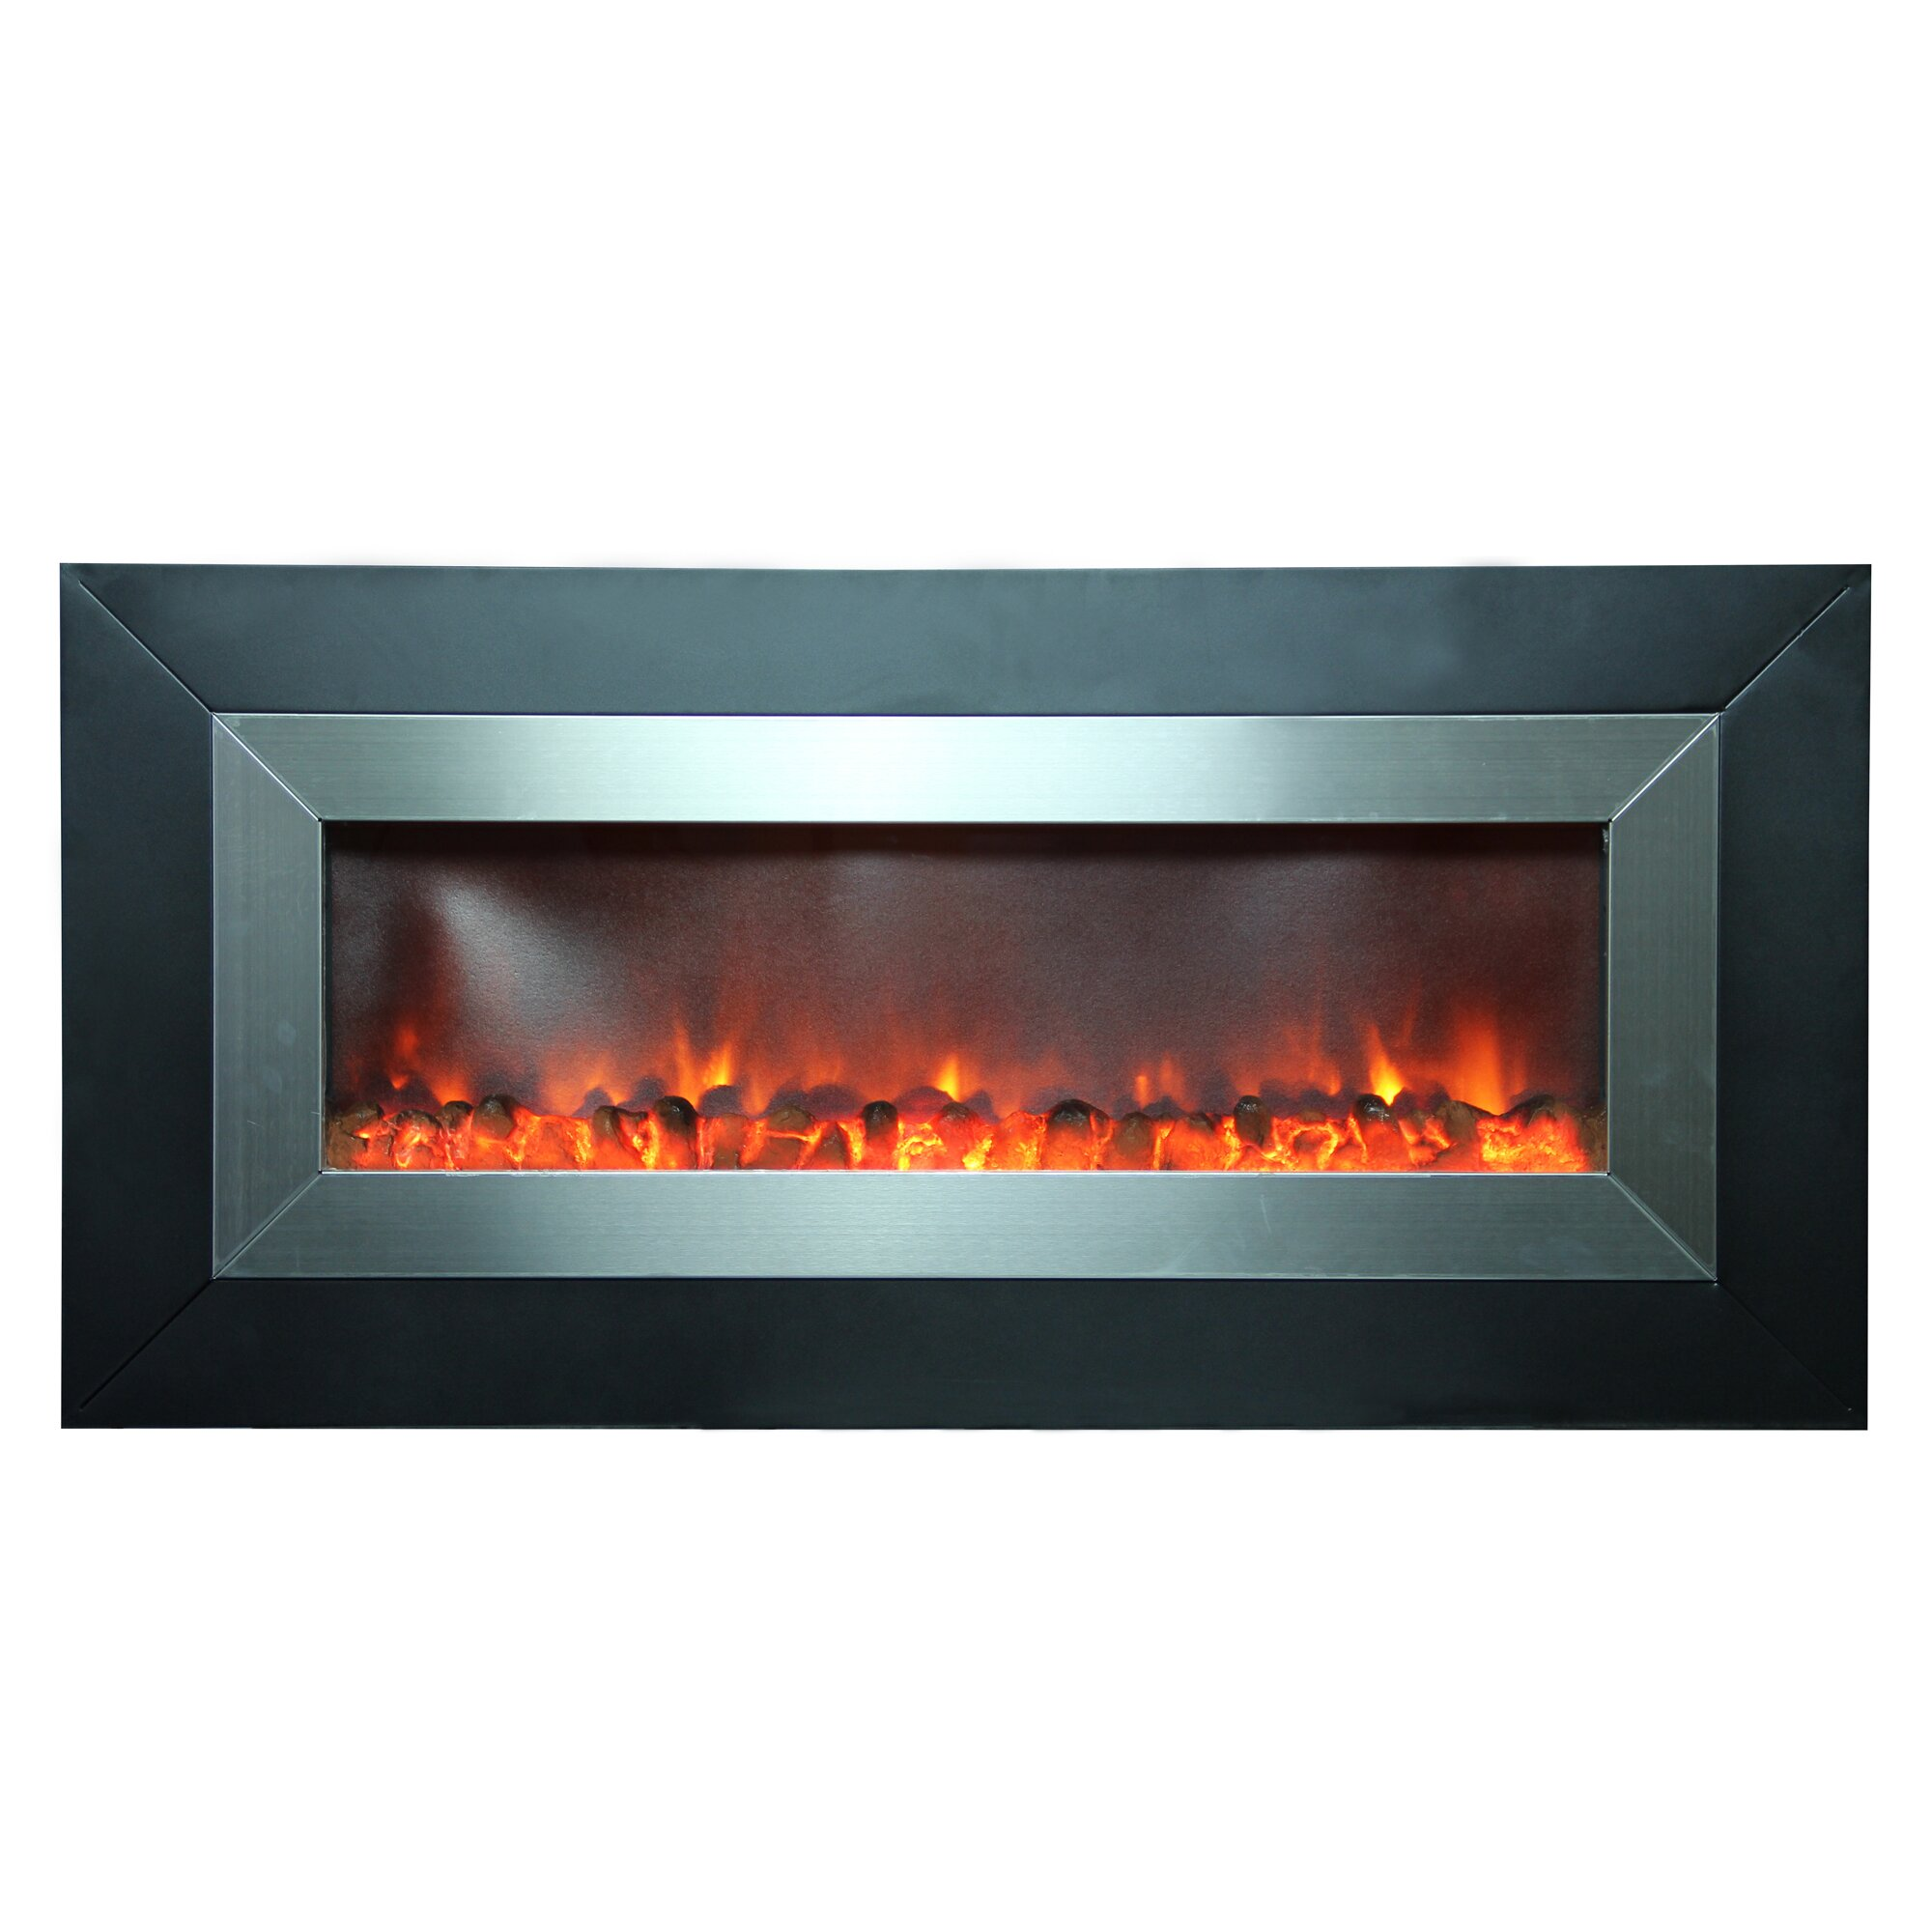 Stanton 50 Electric Fireplace Reviews - Electric Fireplace Heat